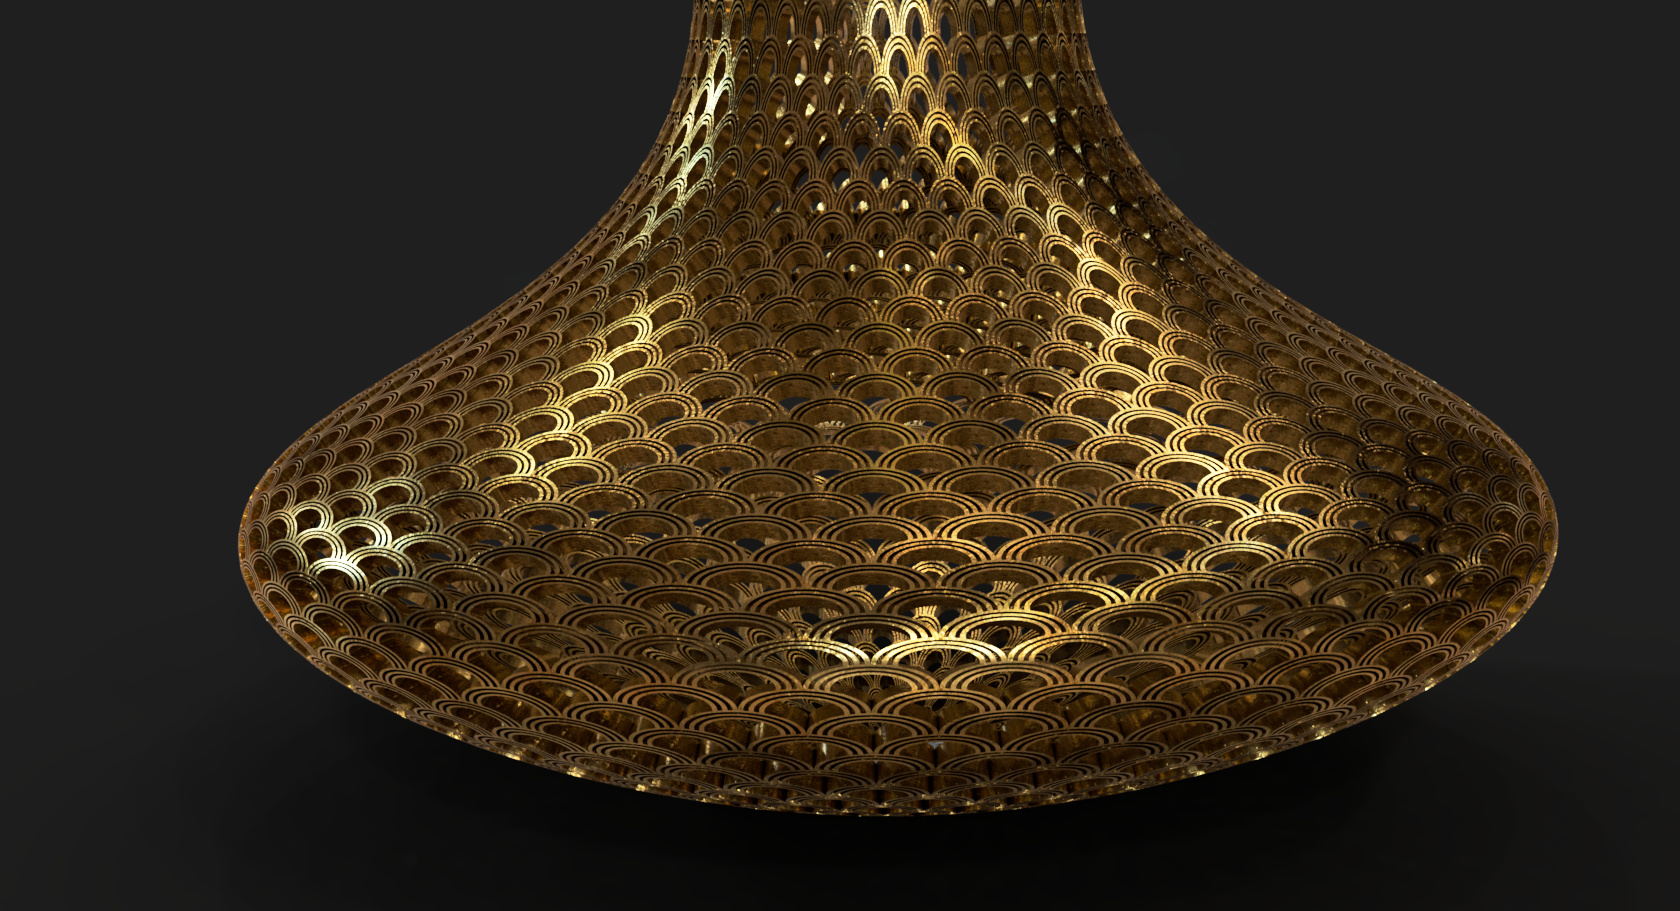 Vase_with_Pattern_componets_2021-Jan-21_11-27-08PM-000_CustomizedView18424447539_png